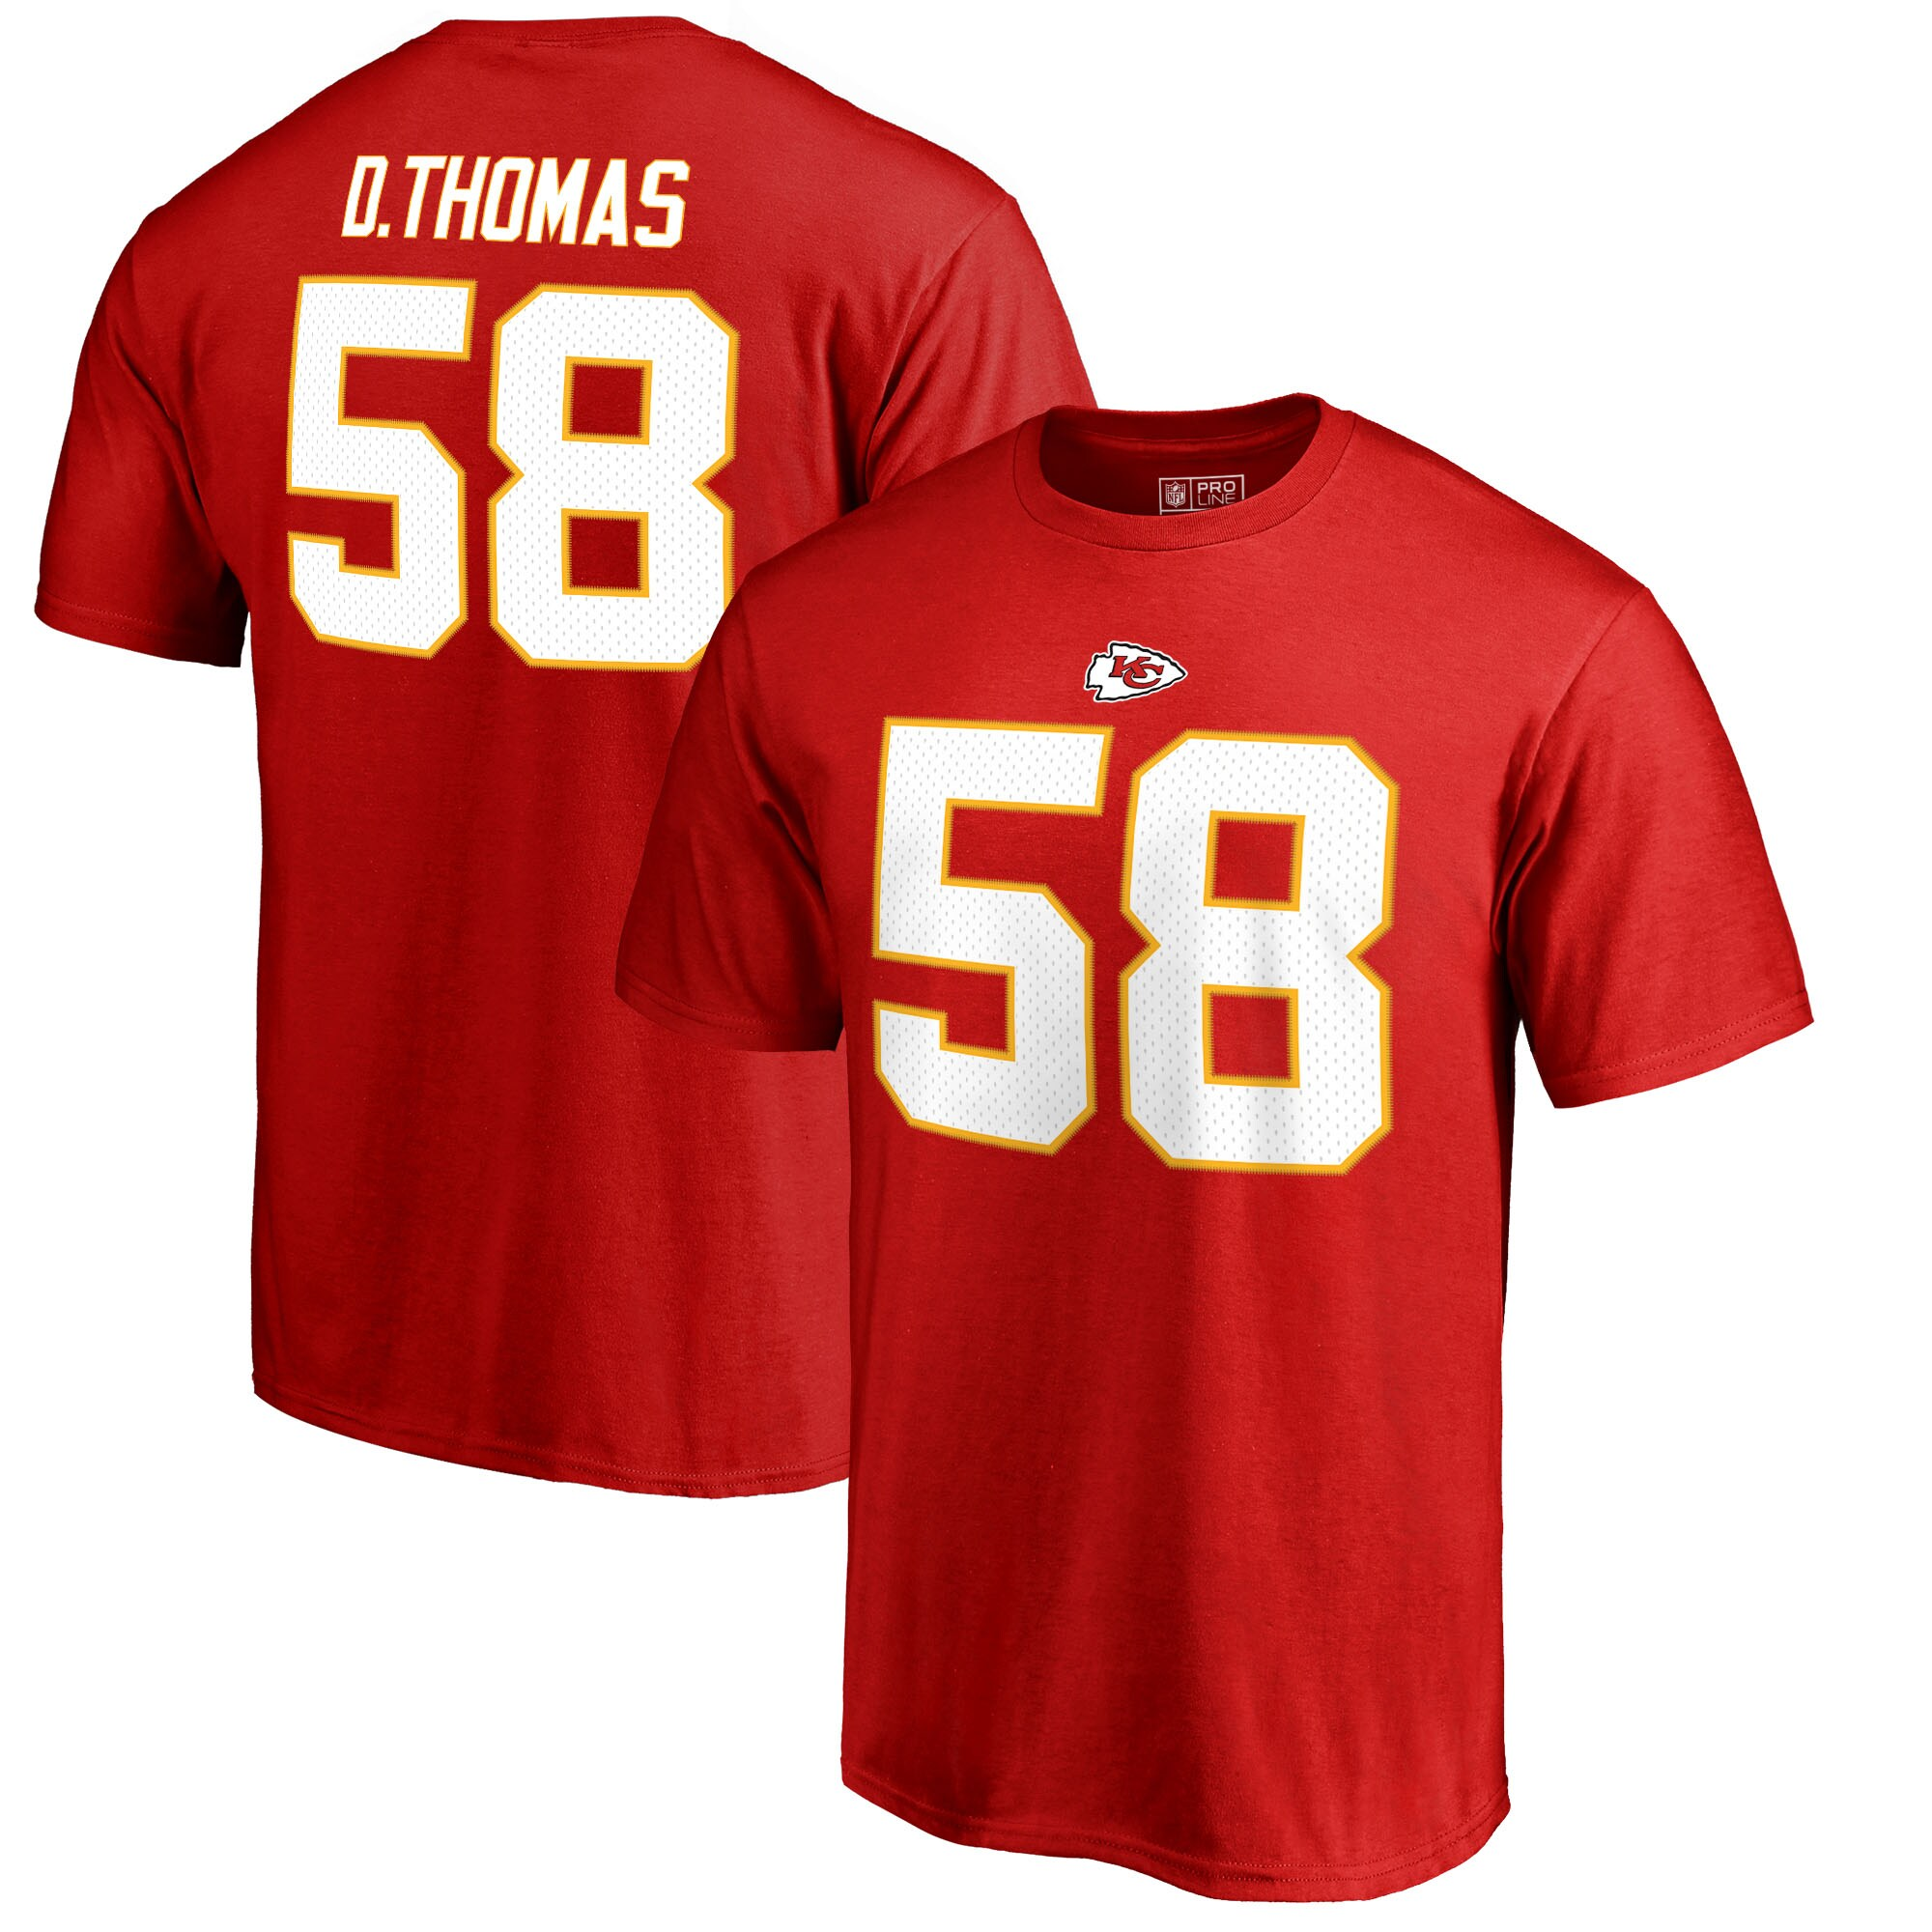 Derrick Thomas Kansas City Chiefs NFL Pro Line by Fanatics Branded Retired Player Authentic Stack Name & Number T-Shirt - Red